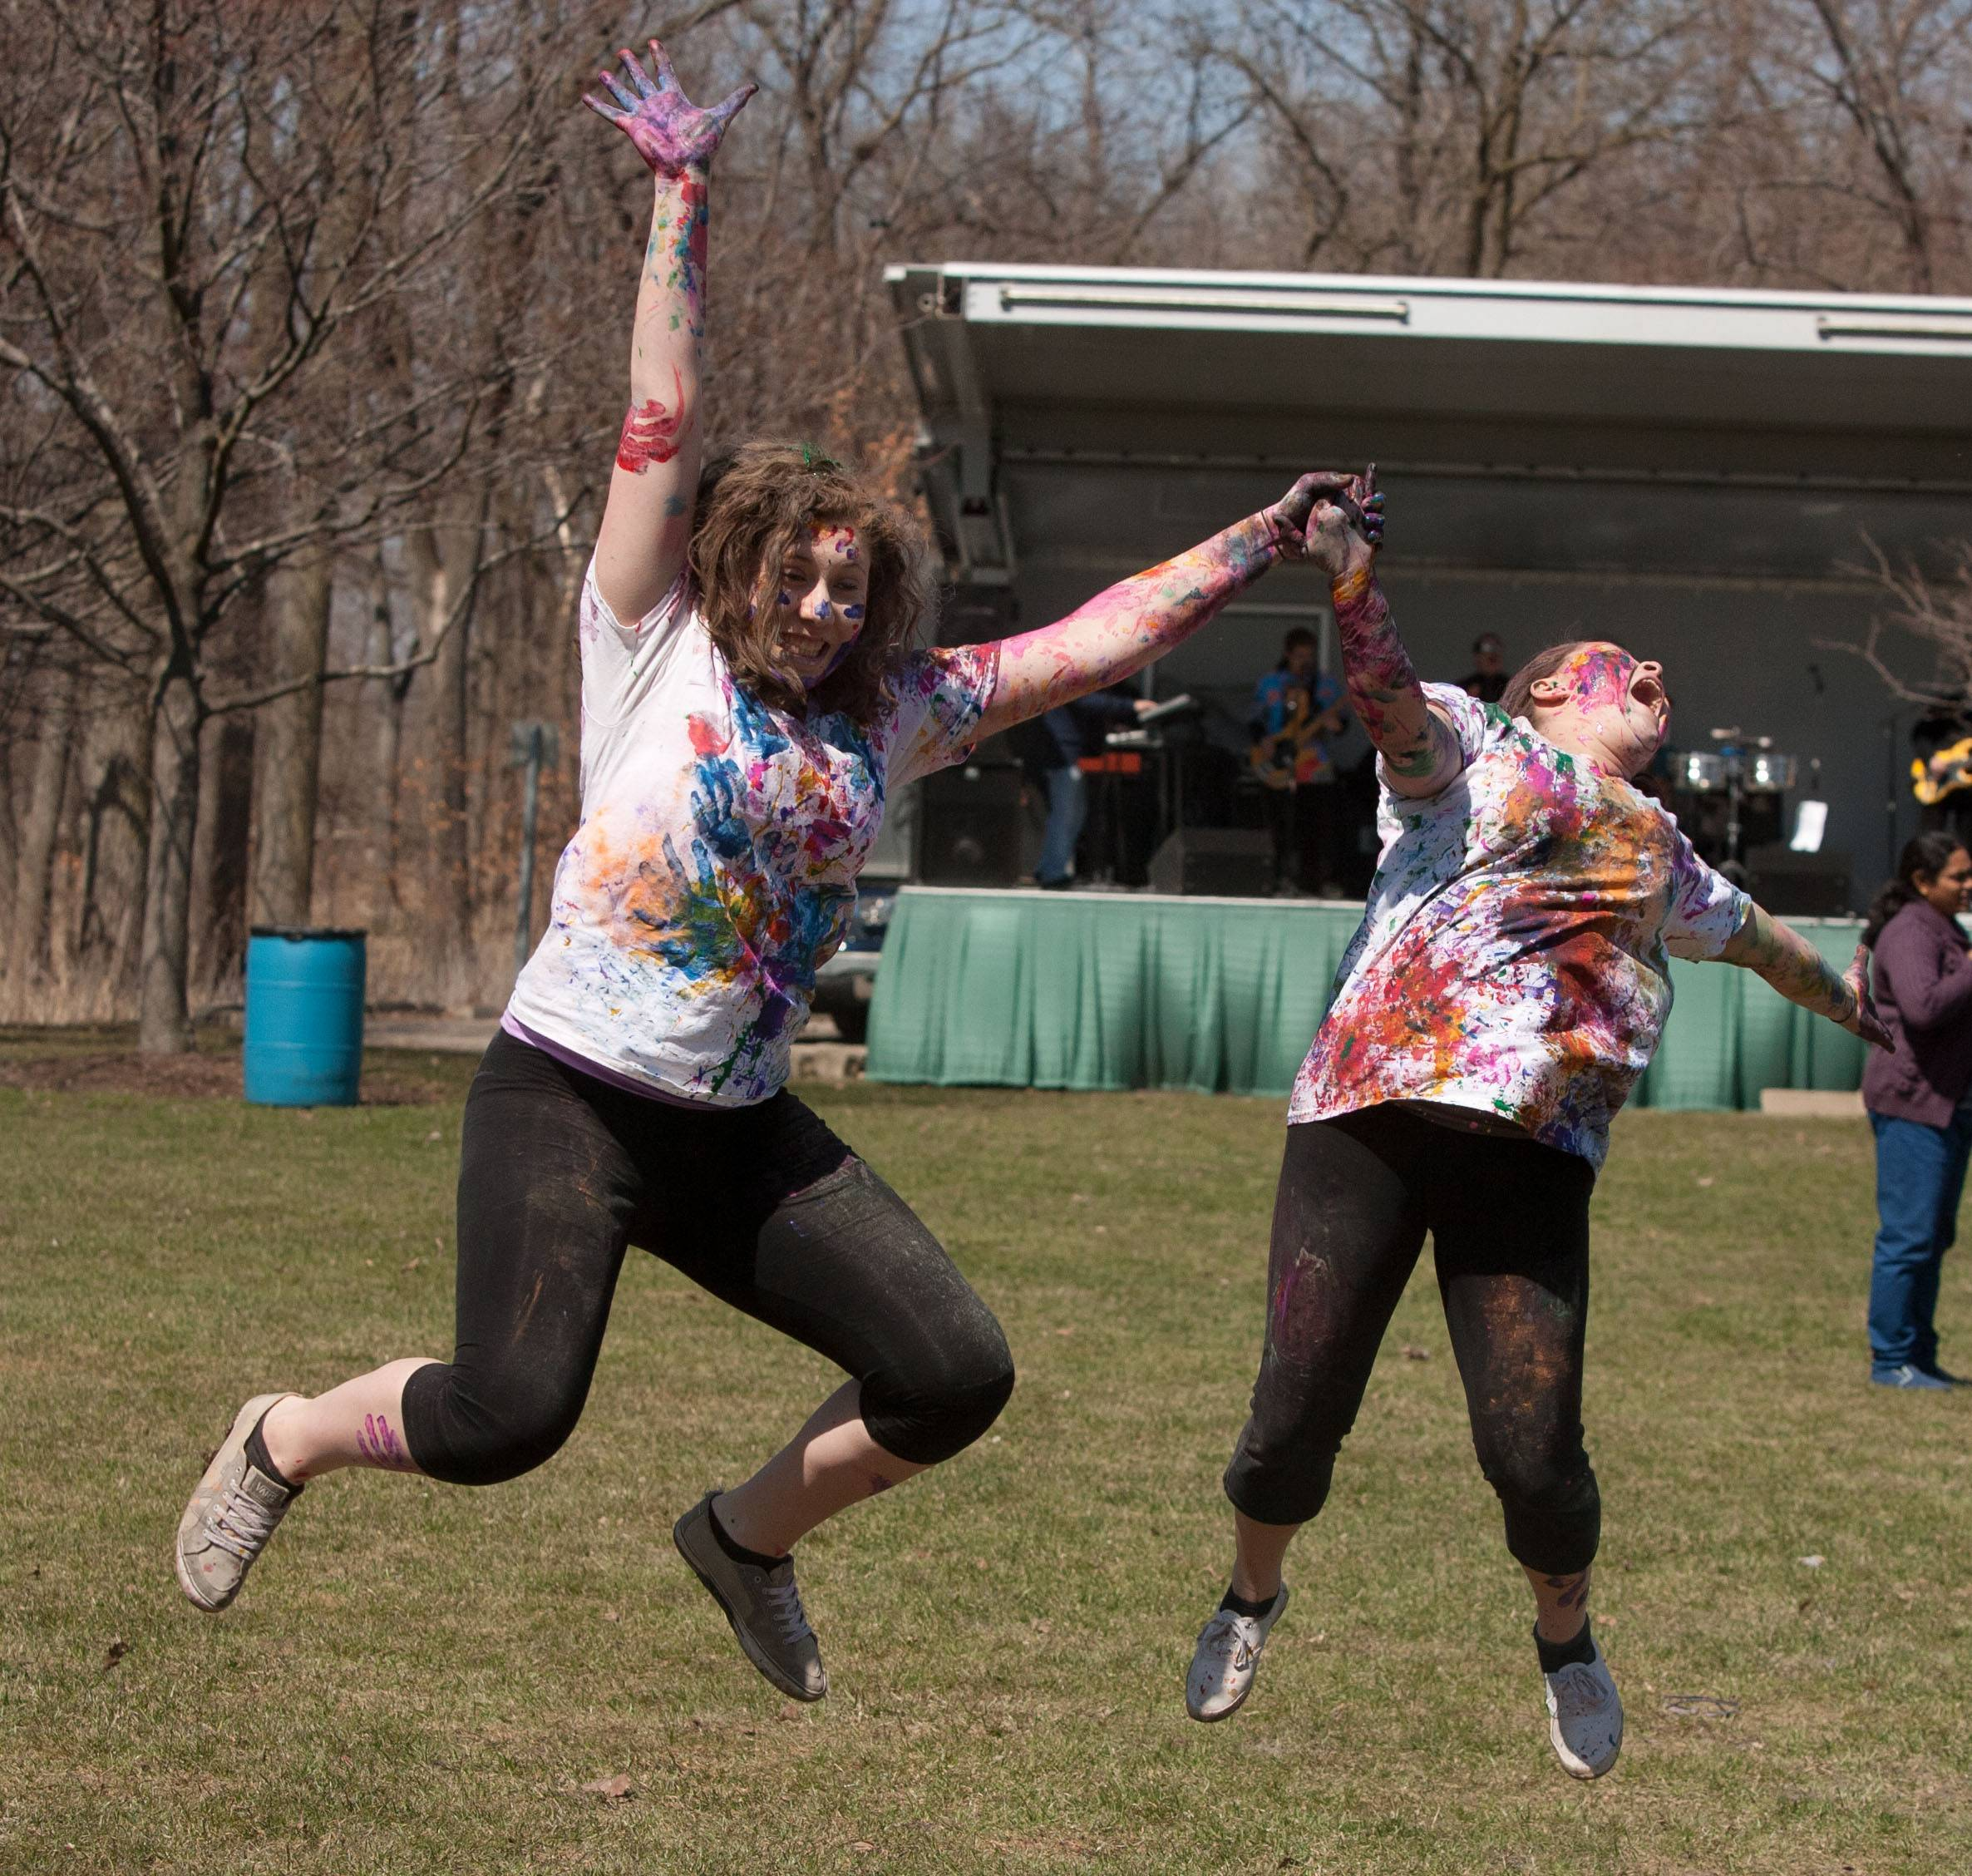 The Simply Vedic Cultural Society hosts the annual Festival of Colors in celebration of Holi, which rejoices at the arrival of spring. Participants like Hannah Brezinski and Michelle Holmes, both of Hanover Park, throw packets of colored powder/flour at each other in honor of the changing seasons in Naperville.